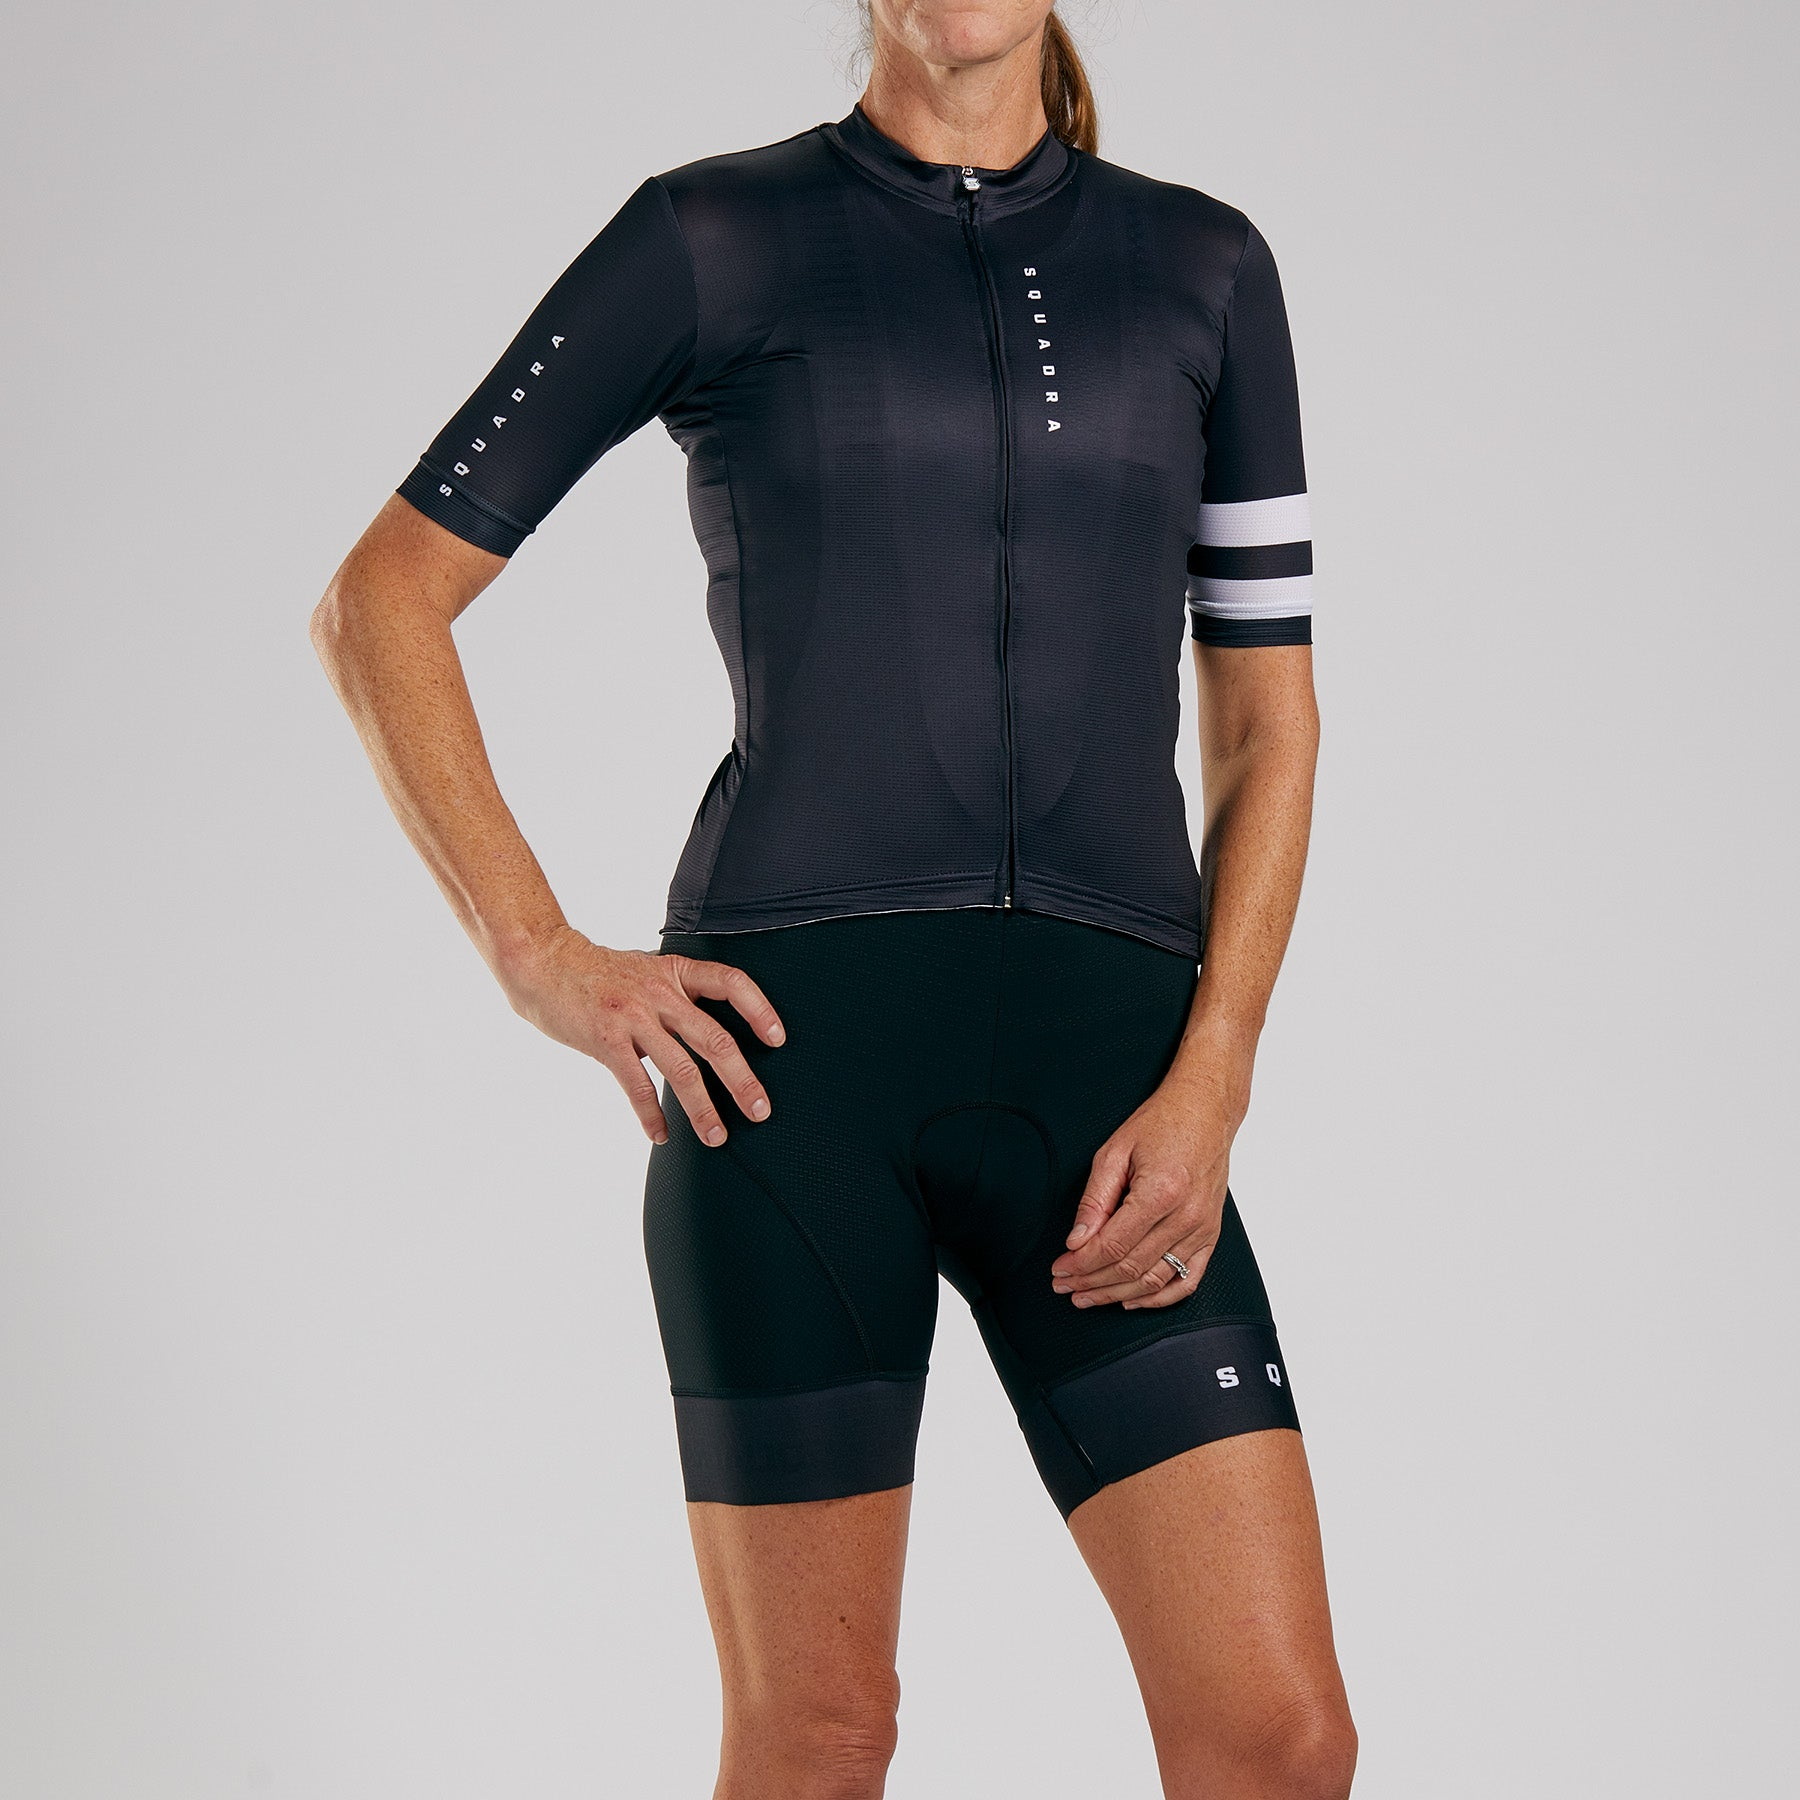 WOMENS PRO ISSUE AERO JERSEY - NERO